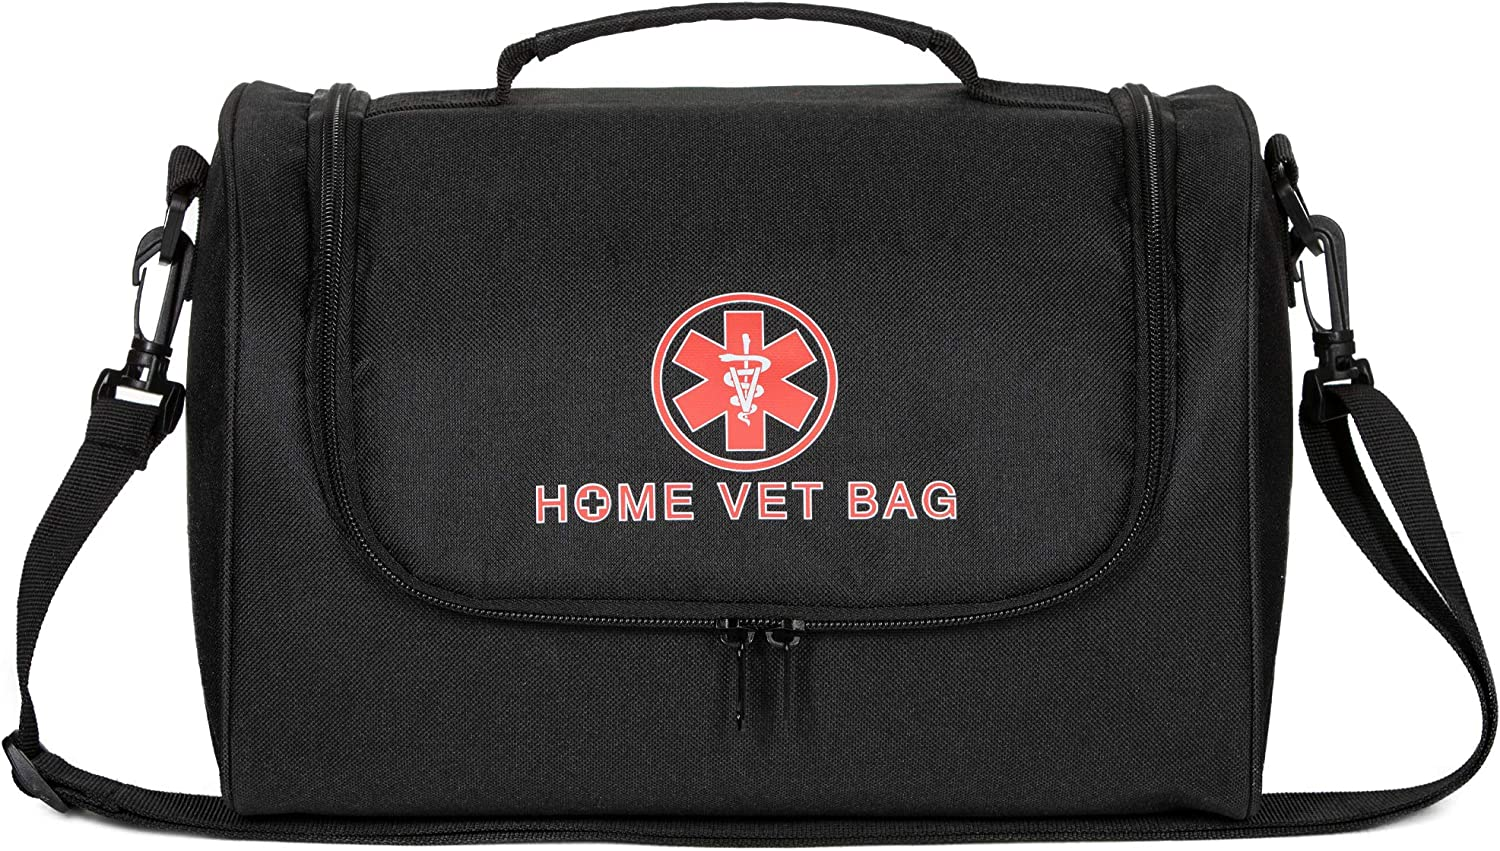 Home Vet Bag: The Ultimate Pet First Aid Kit for Any Pet Care Emergency with Your Dog or Cat